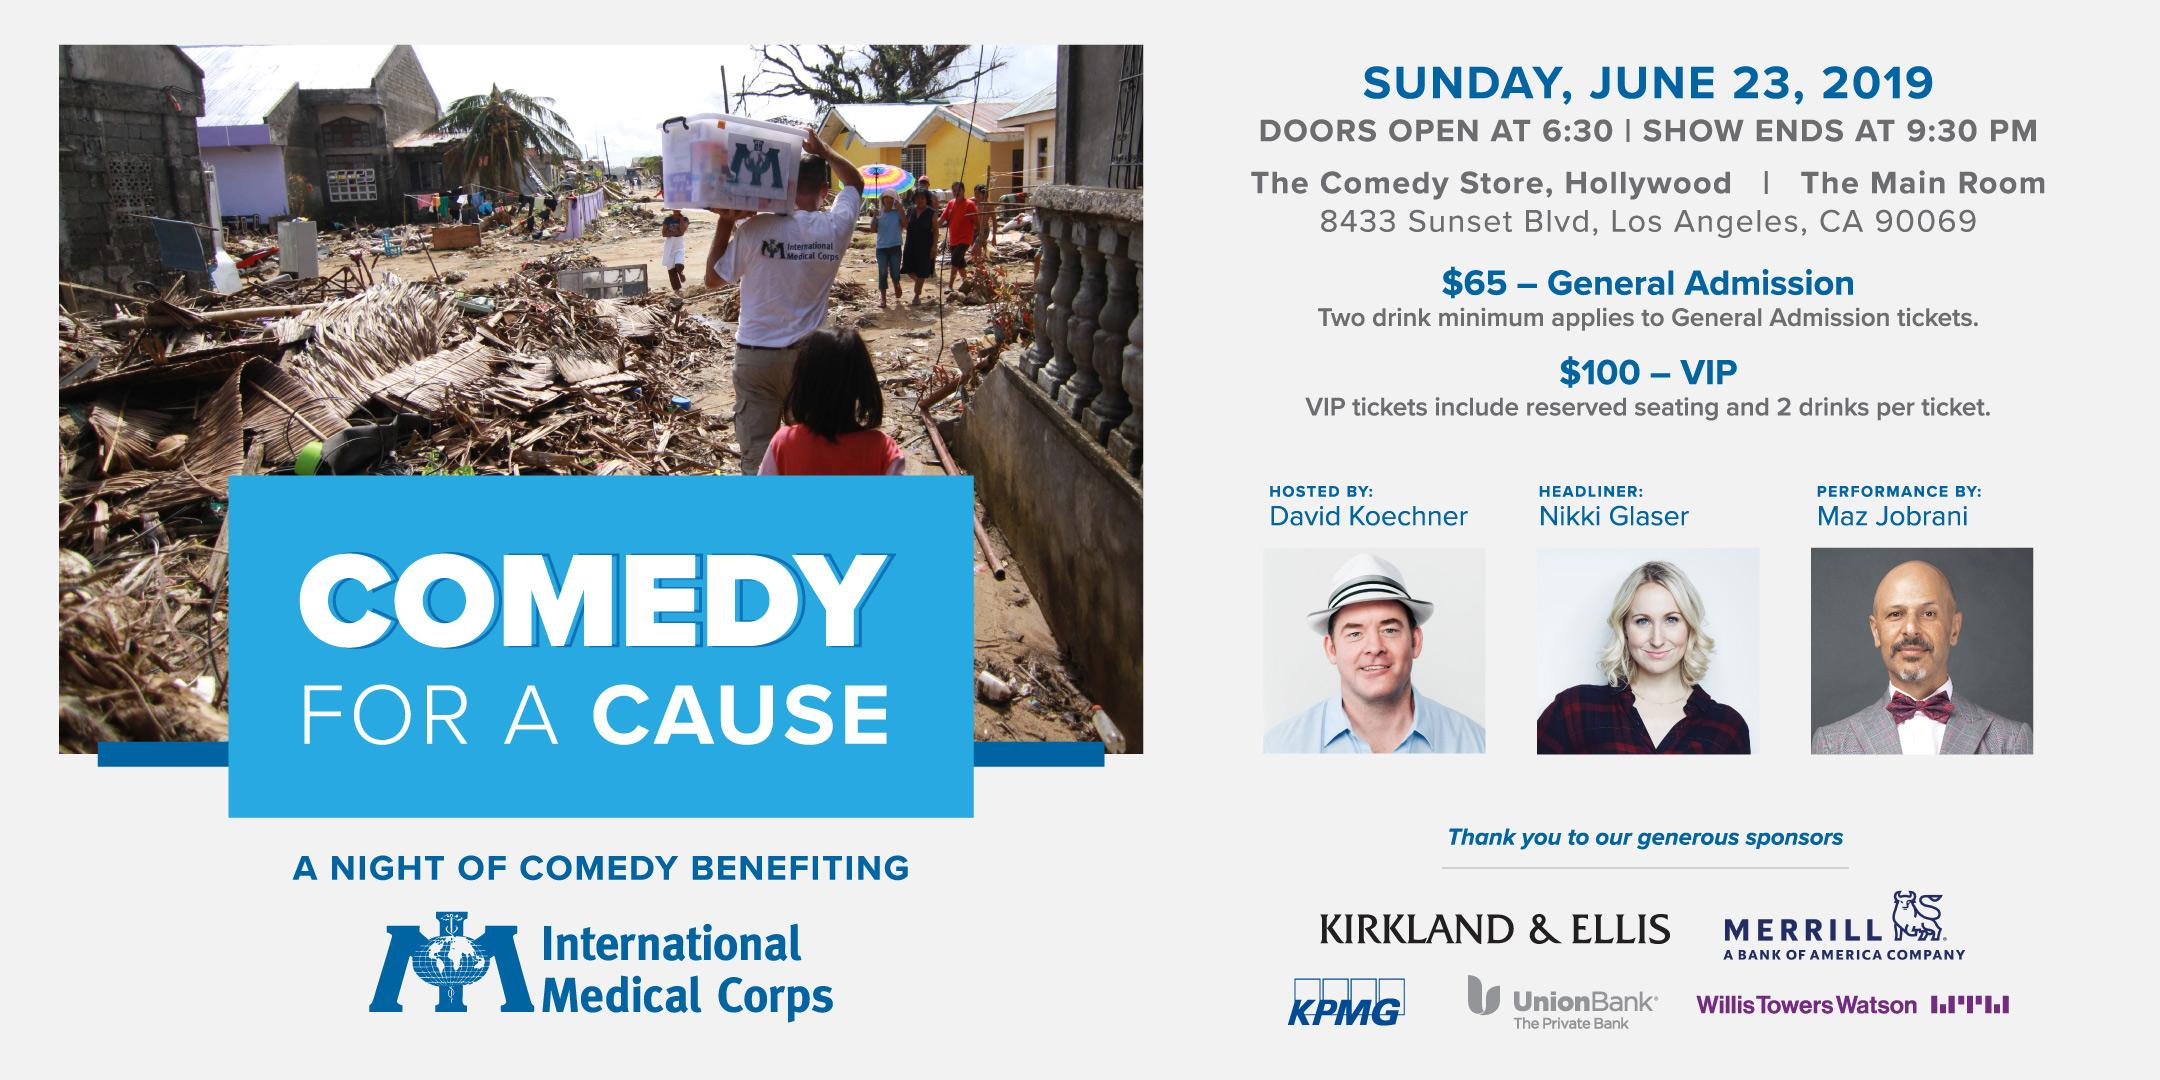 Comedy for a Cause to Benefit International Medical Corp